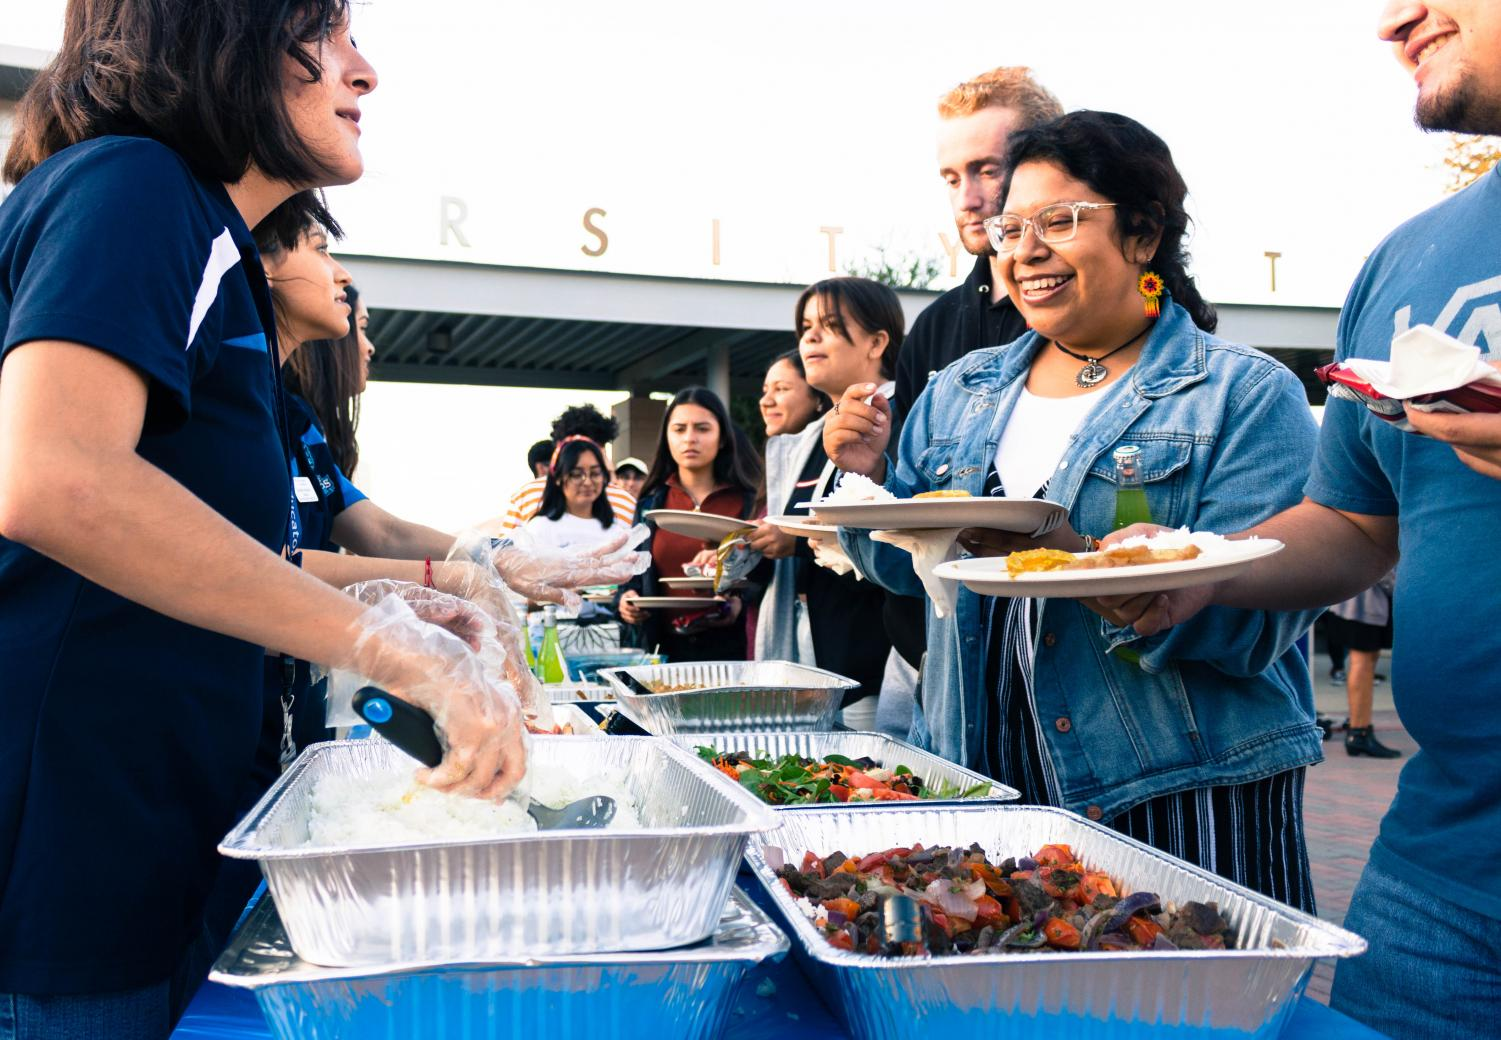 Students enjoy traditional Peruvian cuisine at the Latin American Cultural Showcase on Oct. 17.